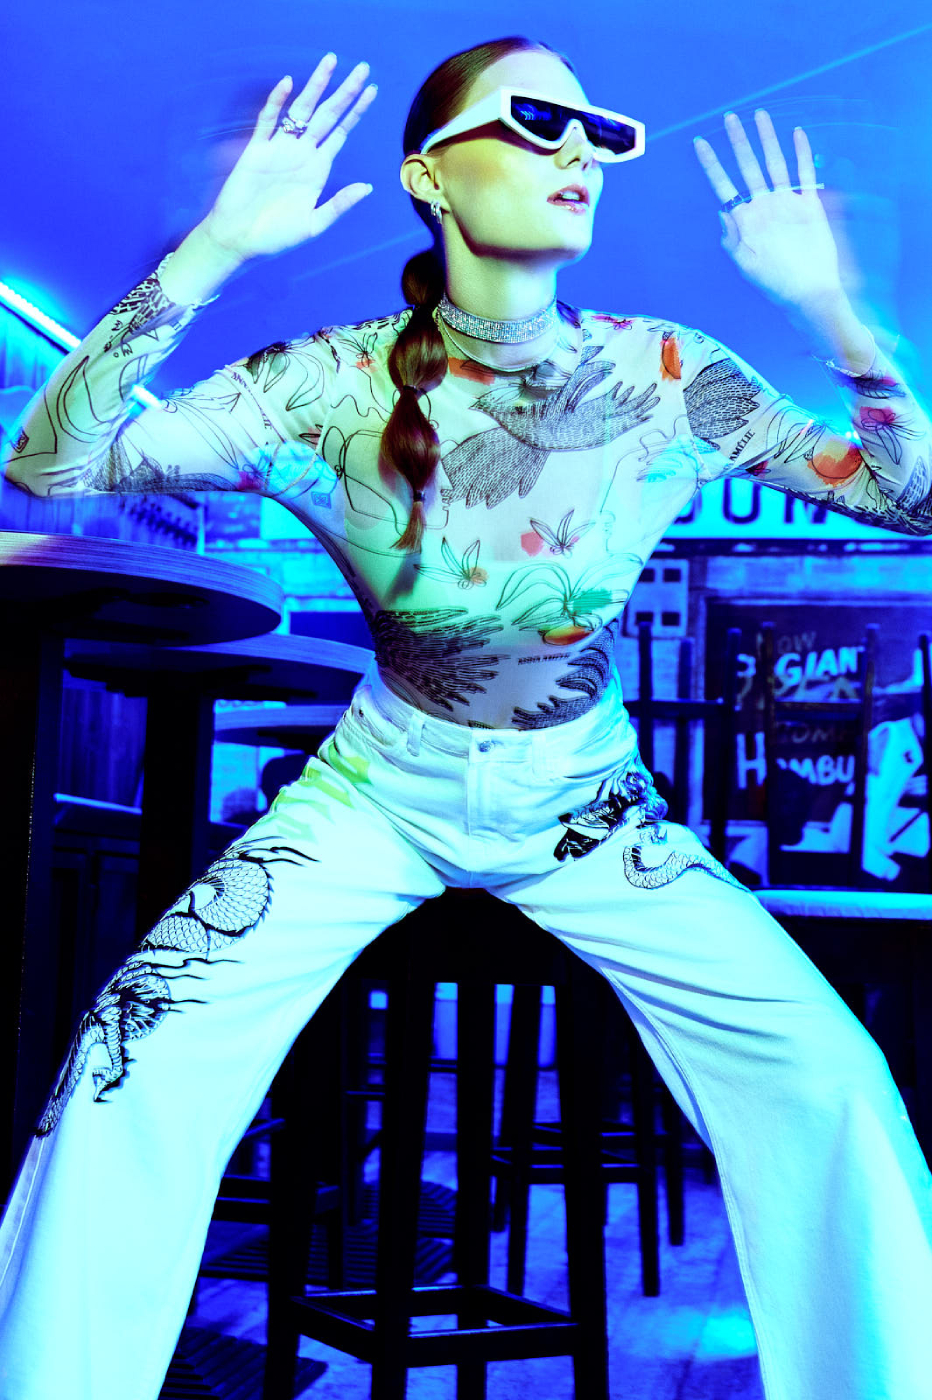 Model Reka Fedra makes light trails with her hands in a blue light bar shot by Illya Ovchar for Glamour Hungary